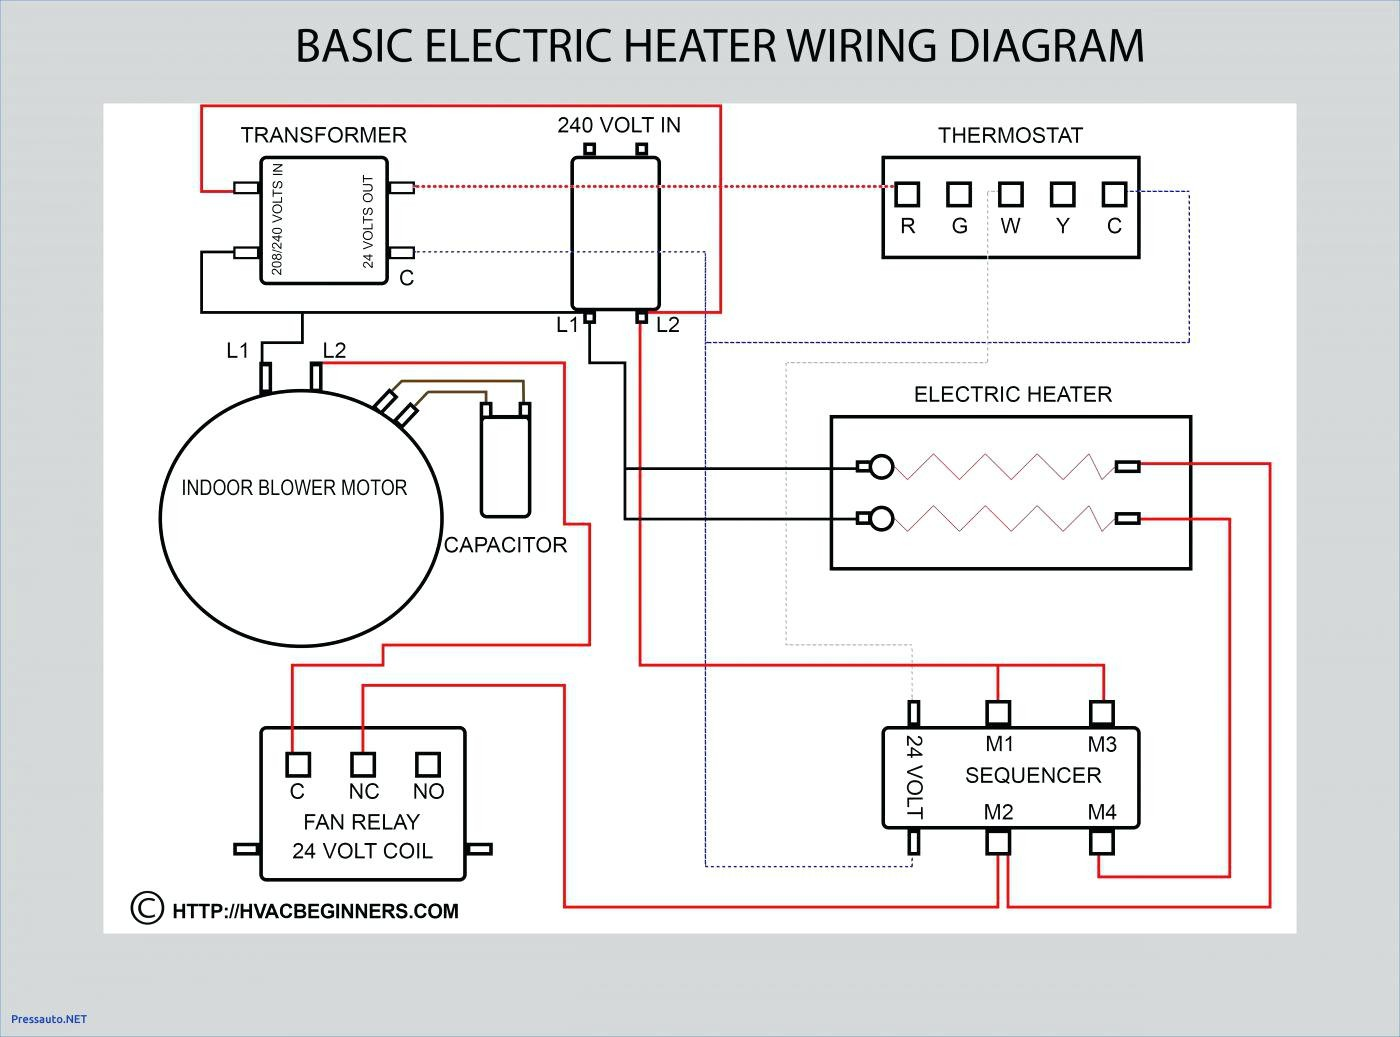 Peco Thermostat Wiring Diagram | New Wiring Resources 2019